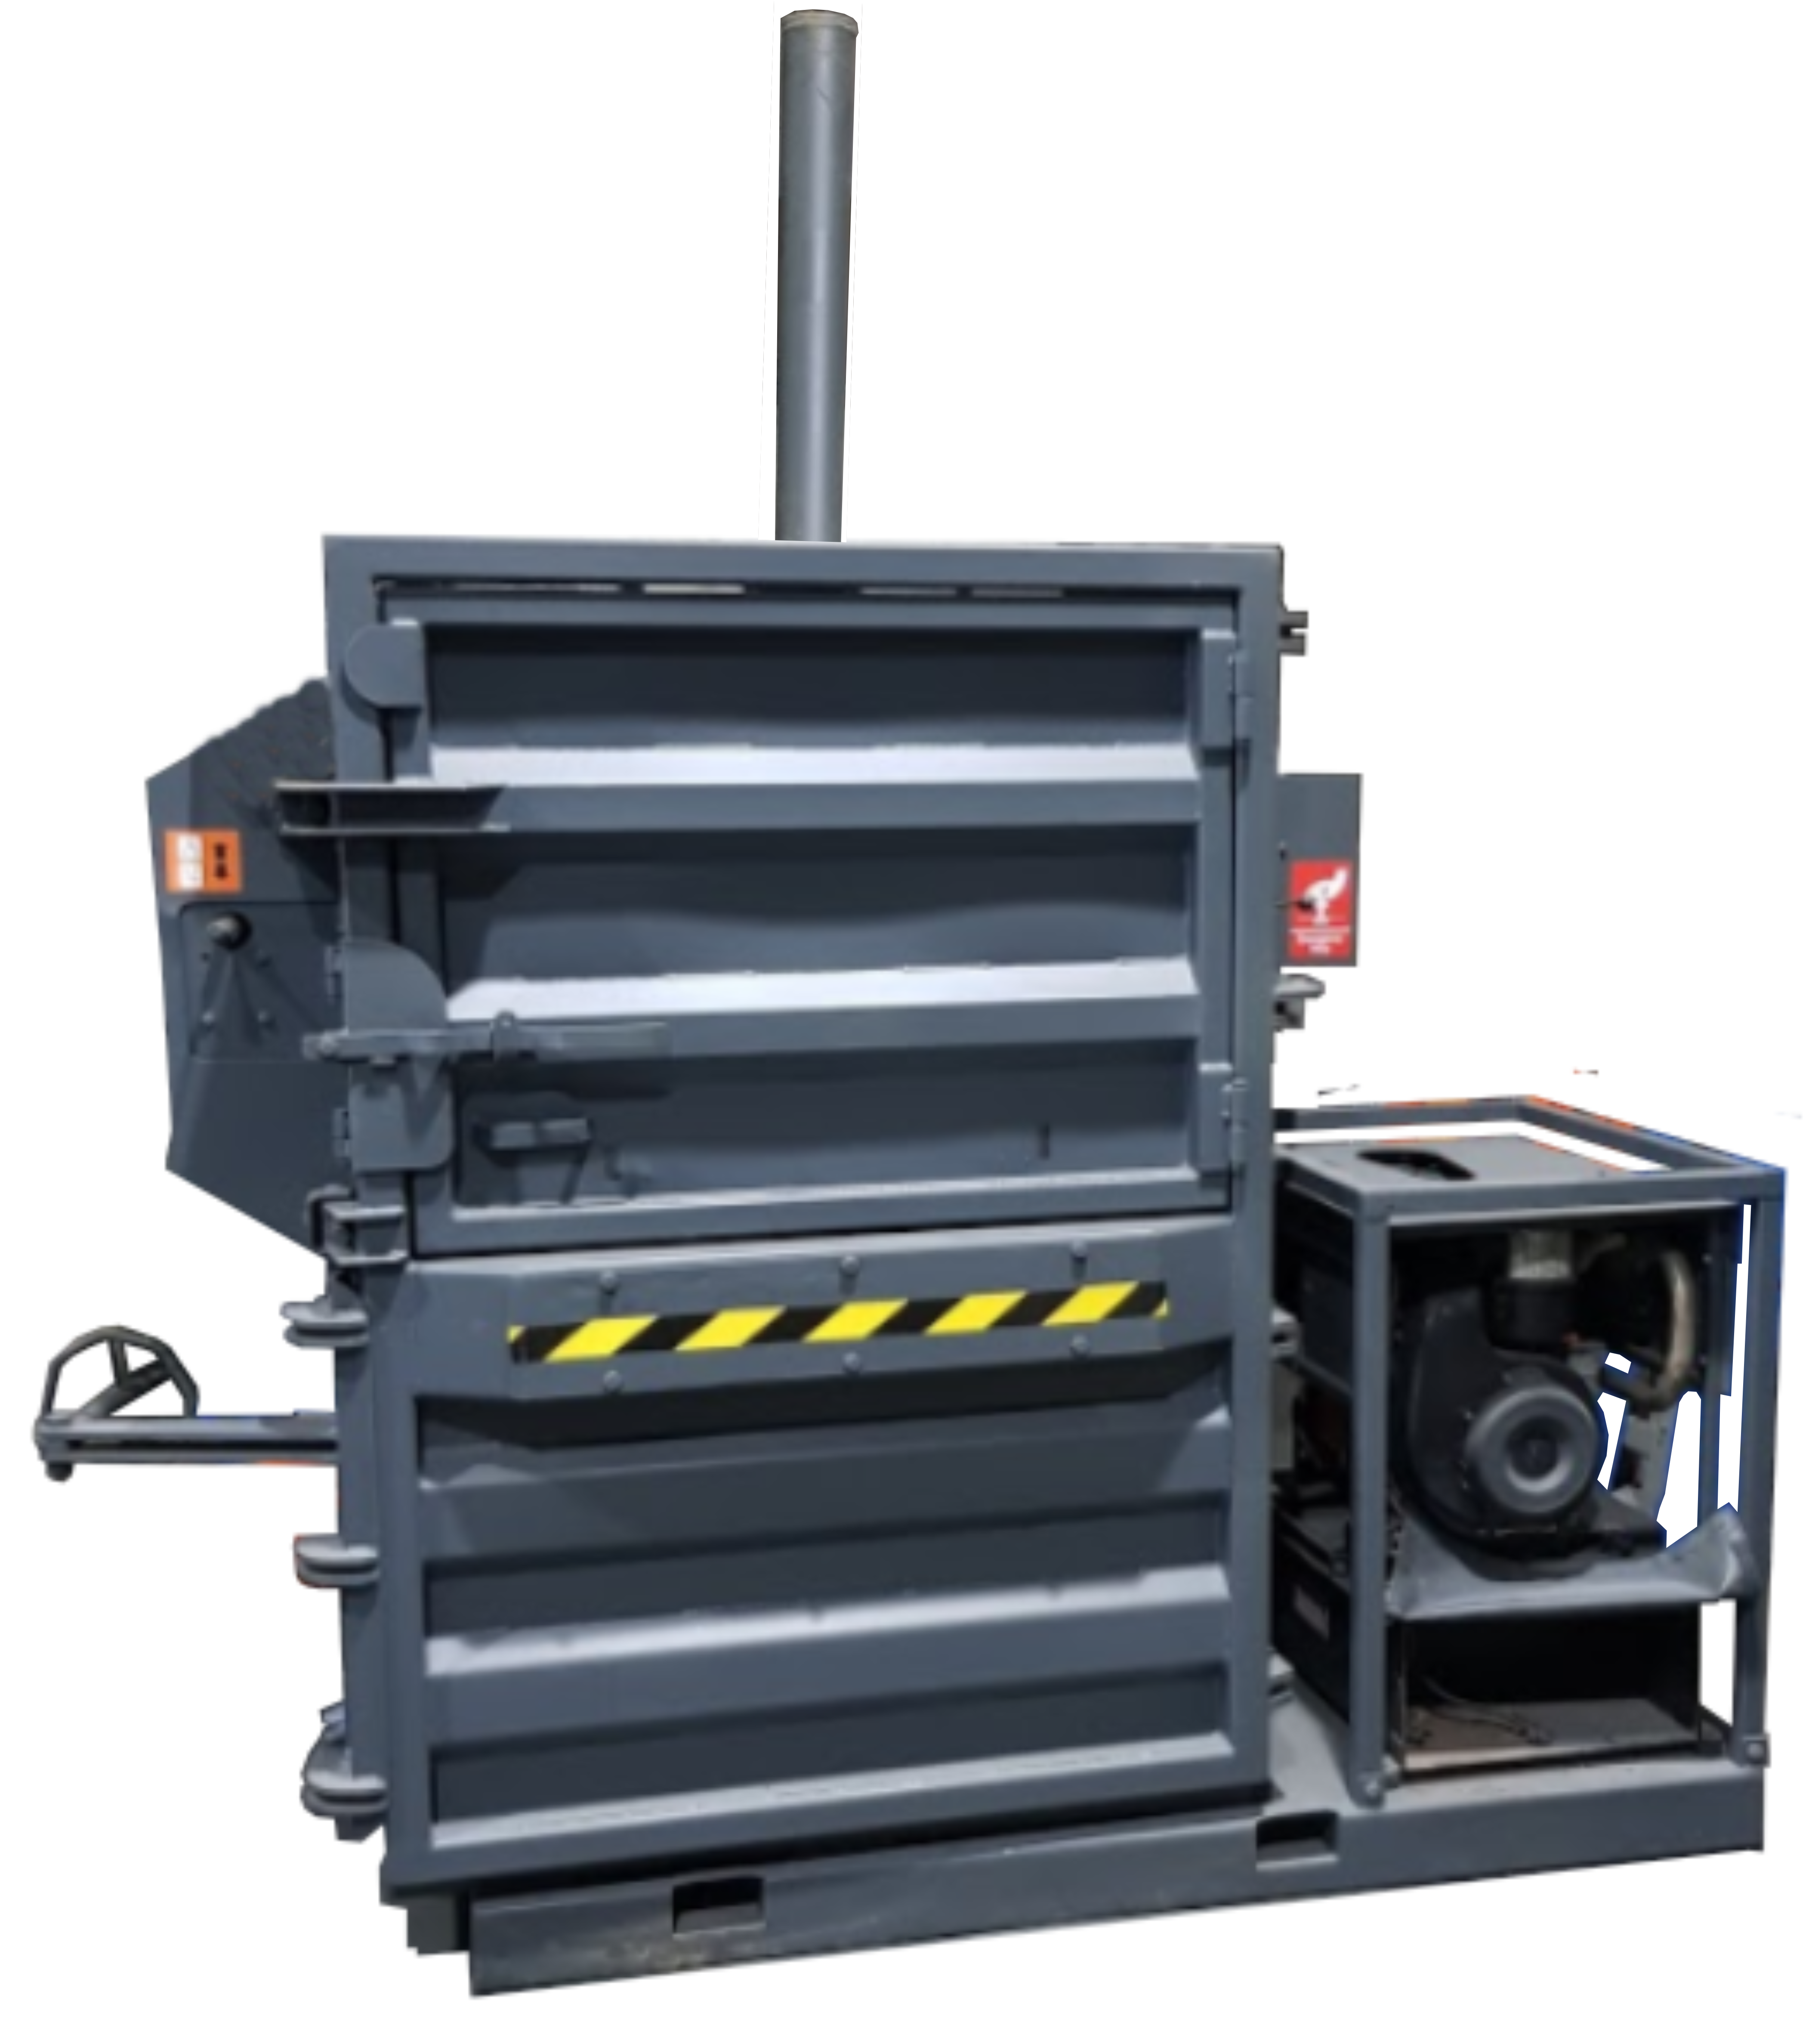 Refurbished Recycling Equipment supplied by MHM Recycling